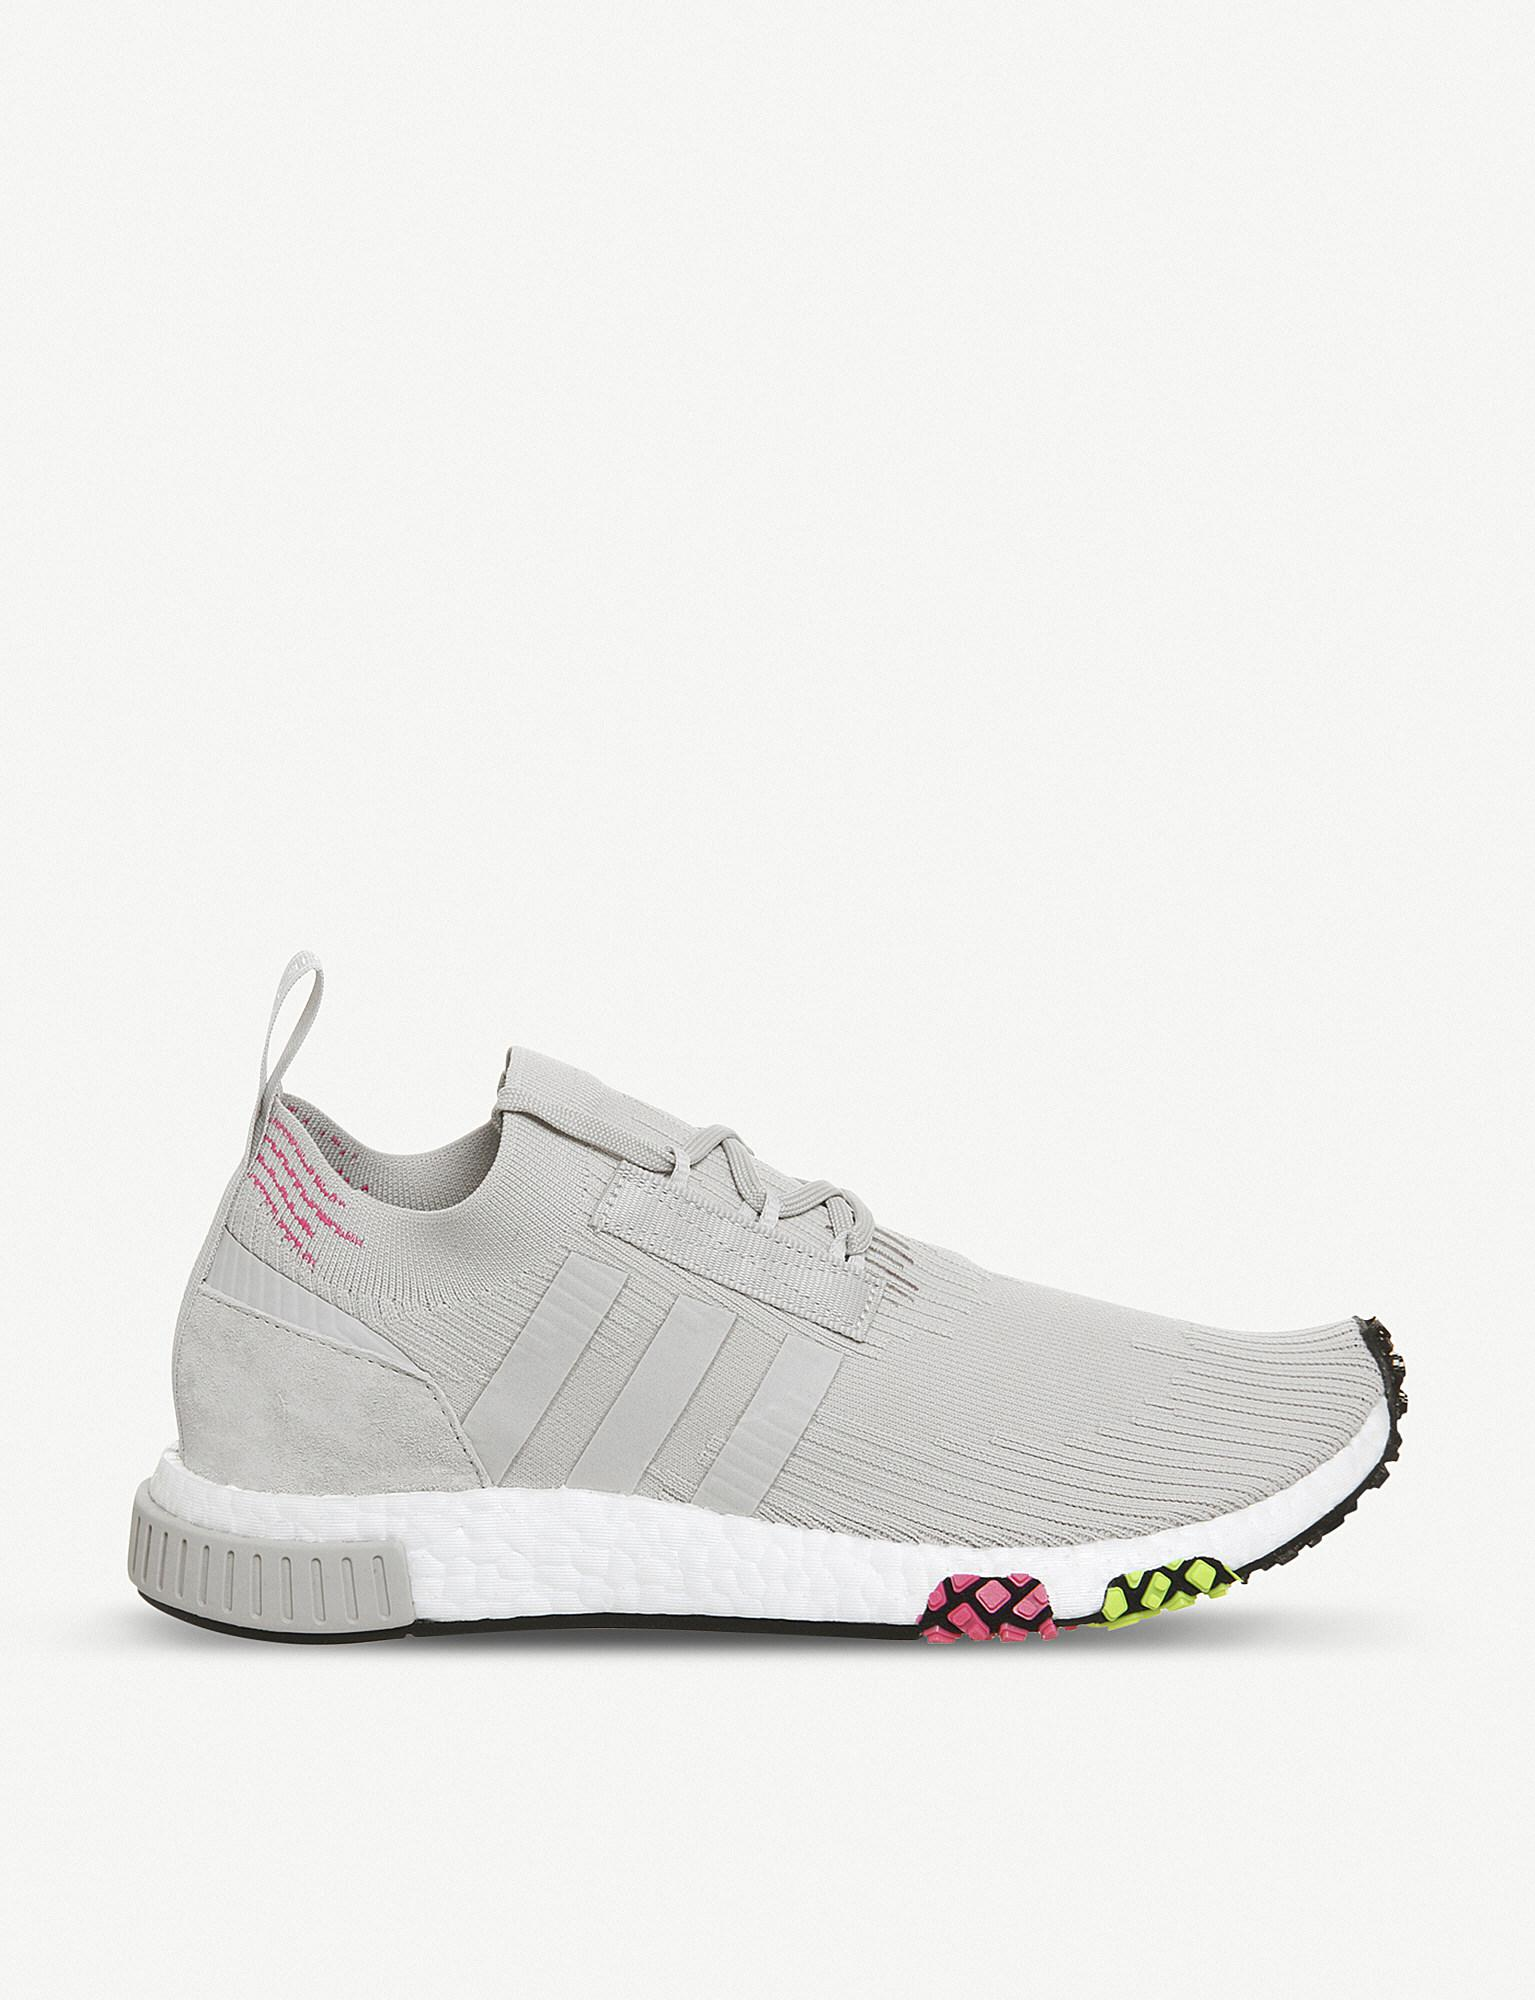 7a7661728b5d Lyst - adidas Nmd Racer Primeknit And Leather Trainers in Gray for Men